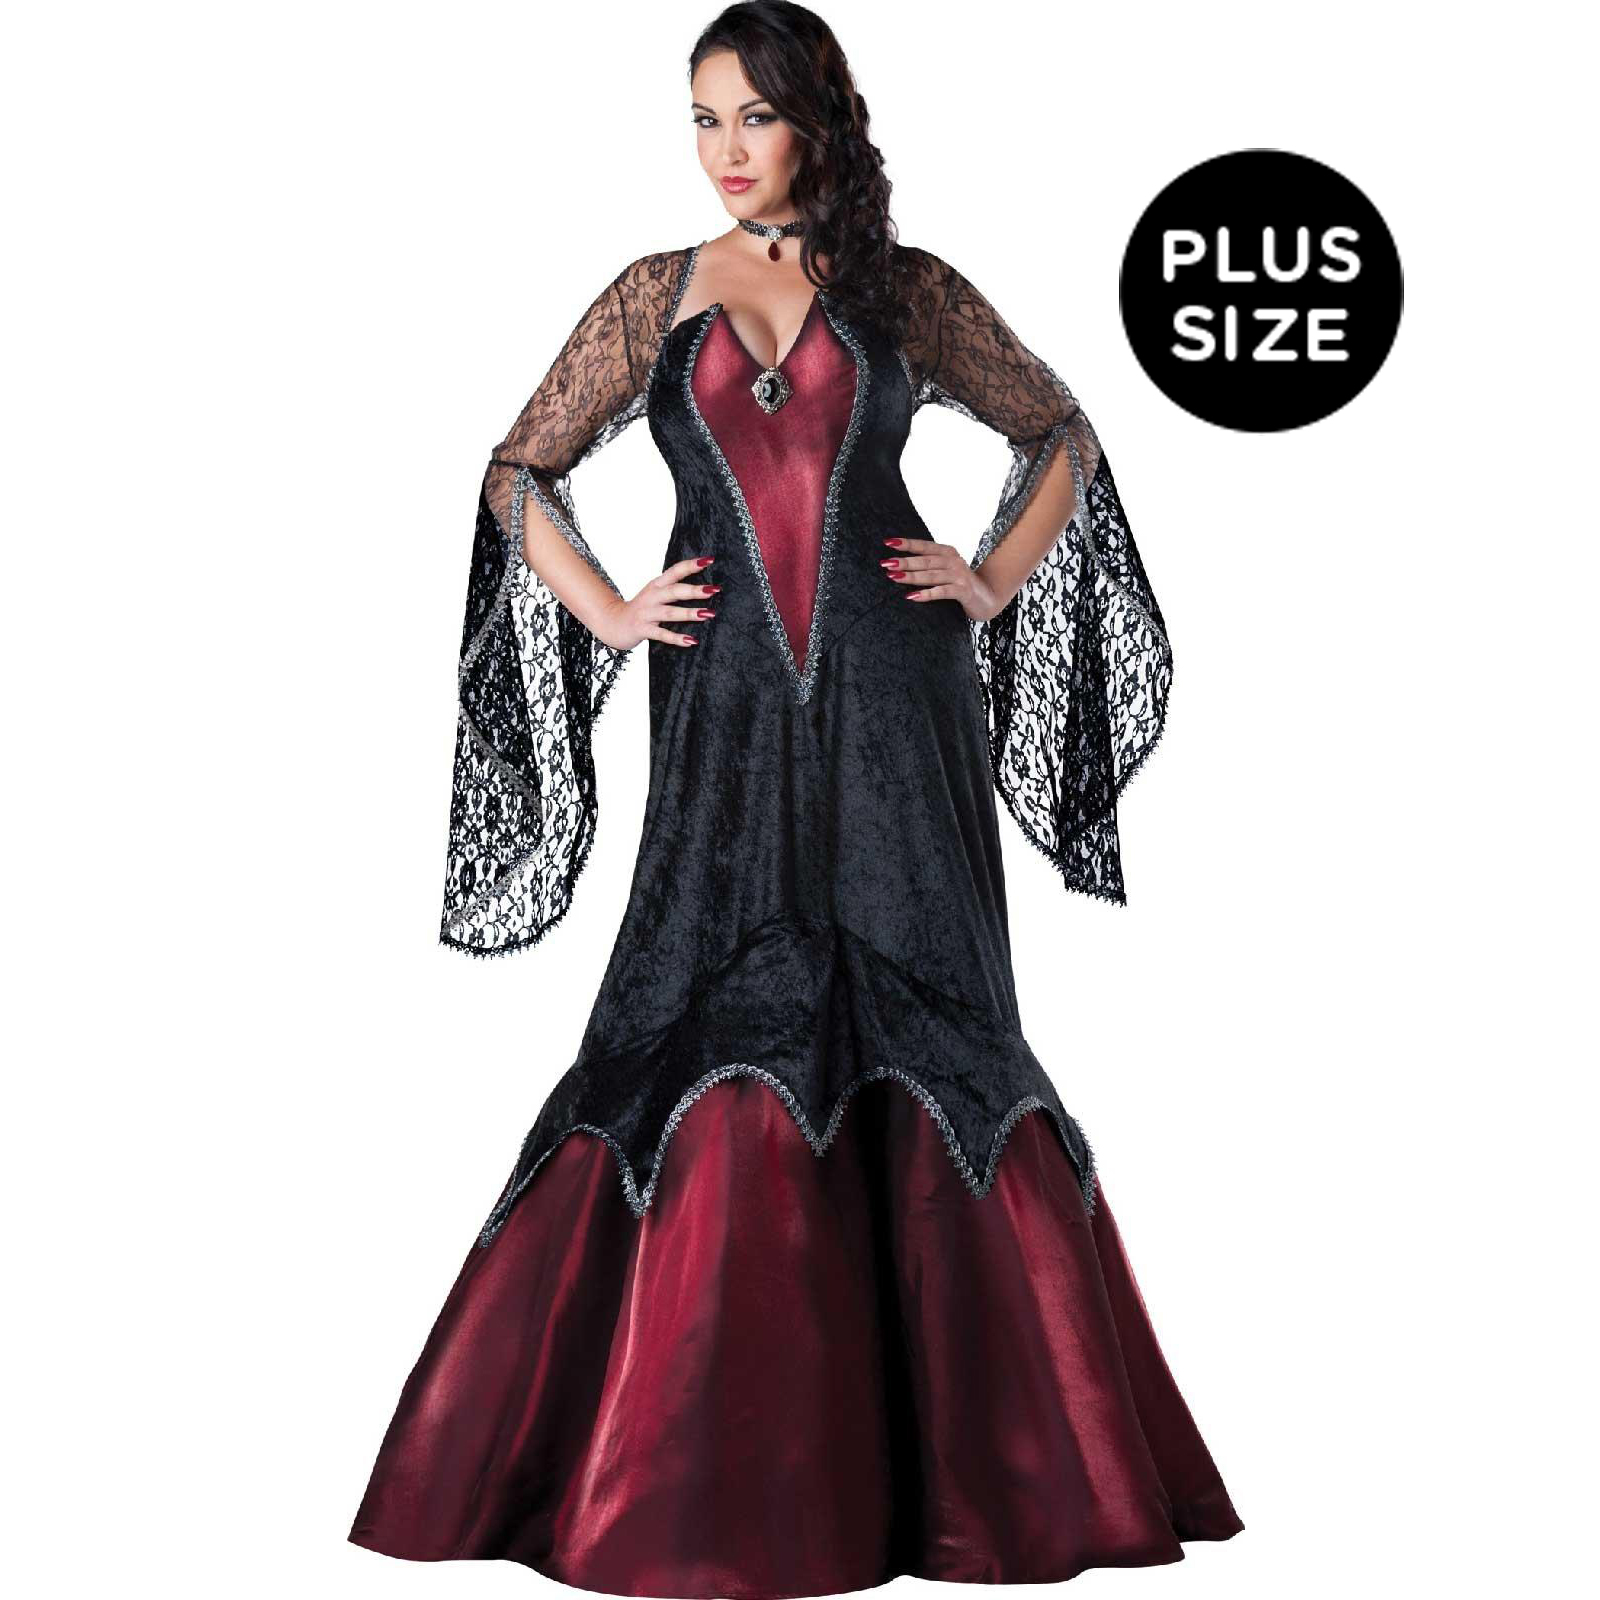 piercing beauty adult plus size costume   buycostumes